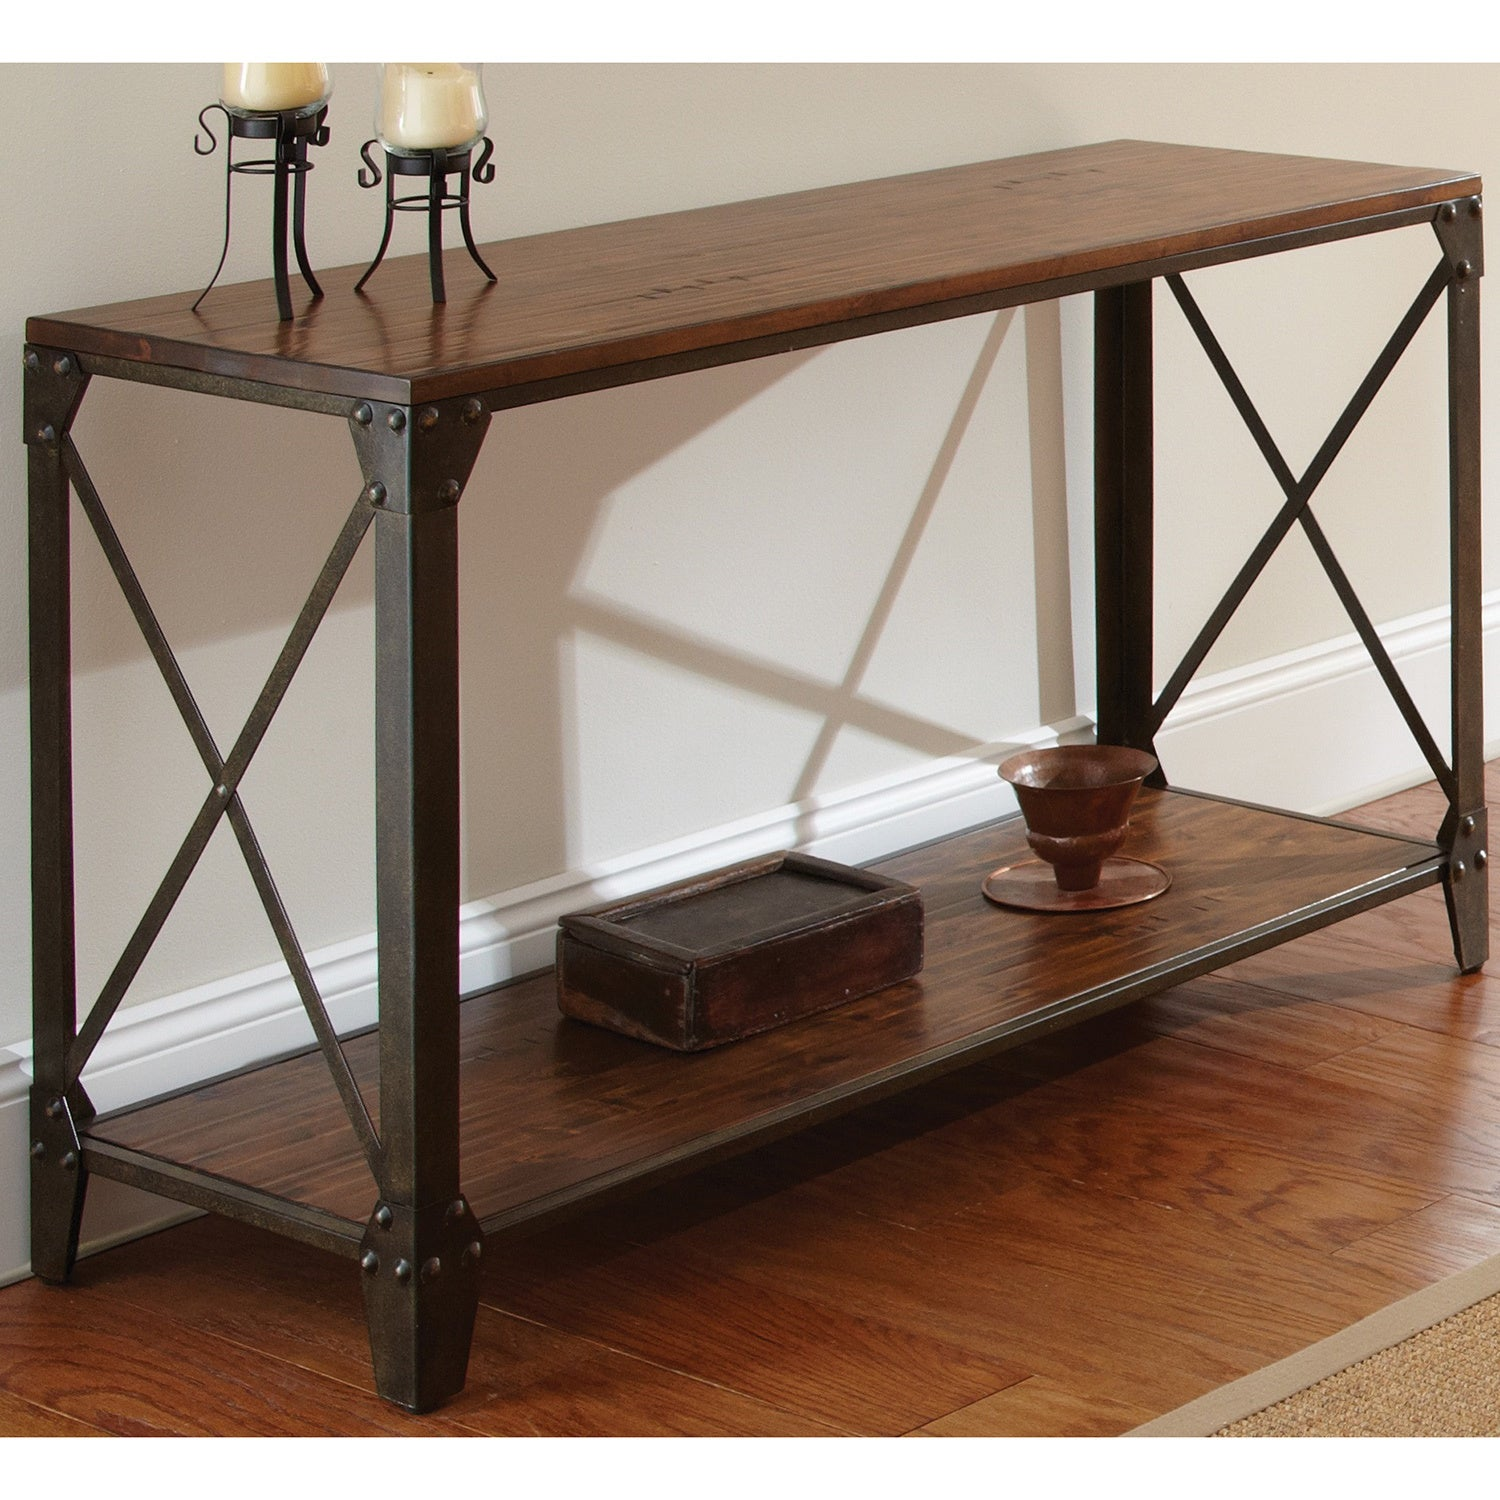 Iron Rustic Sofa Table